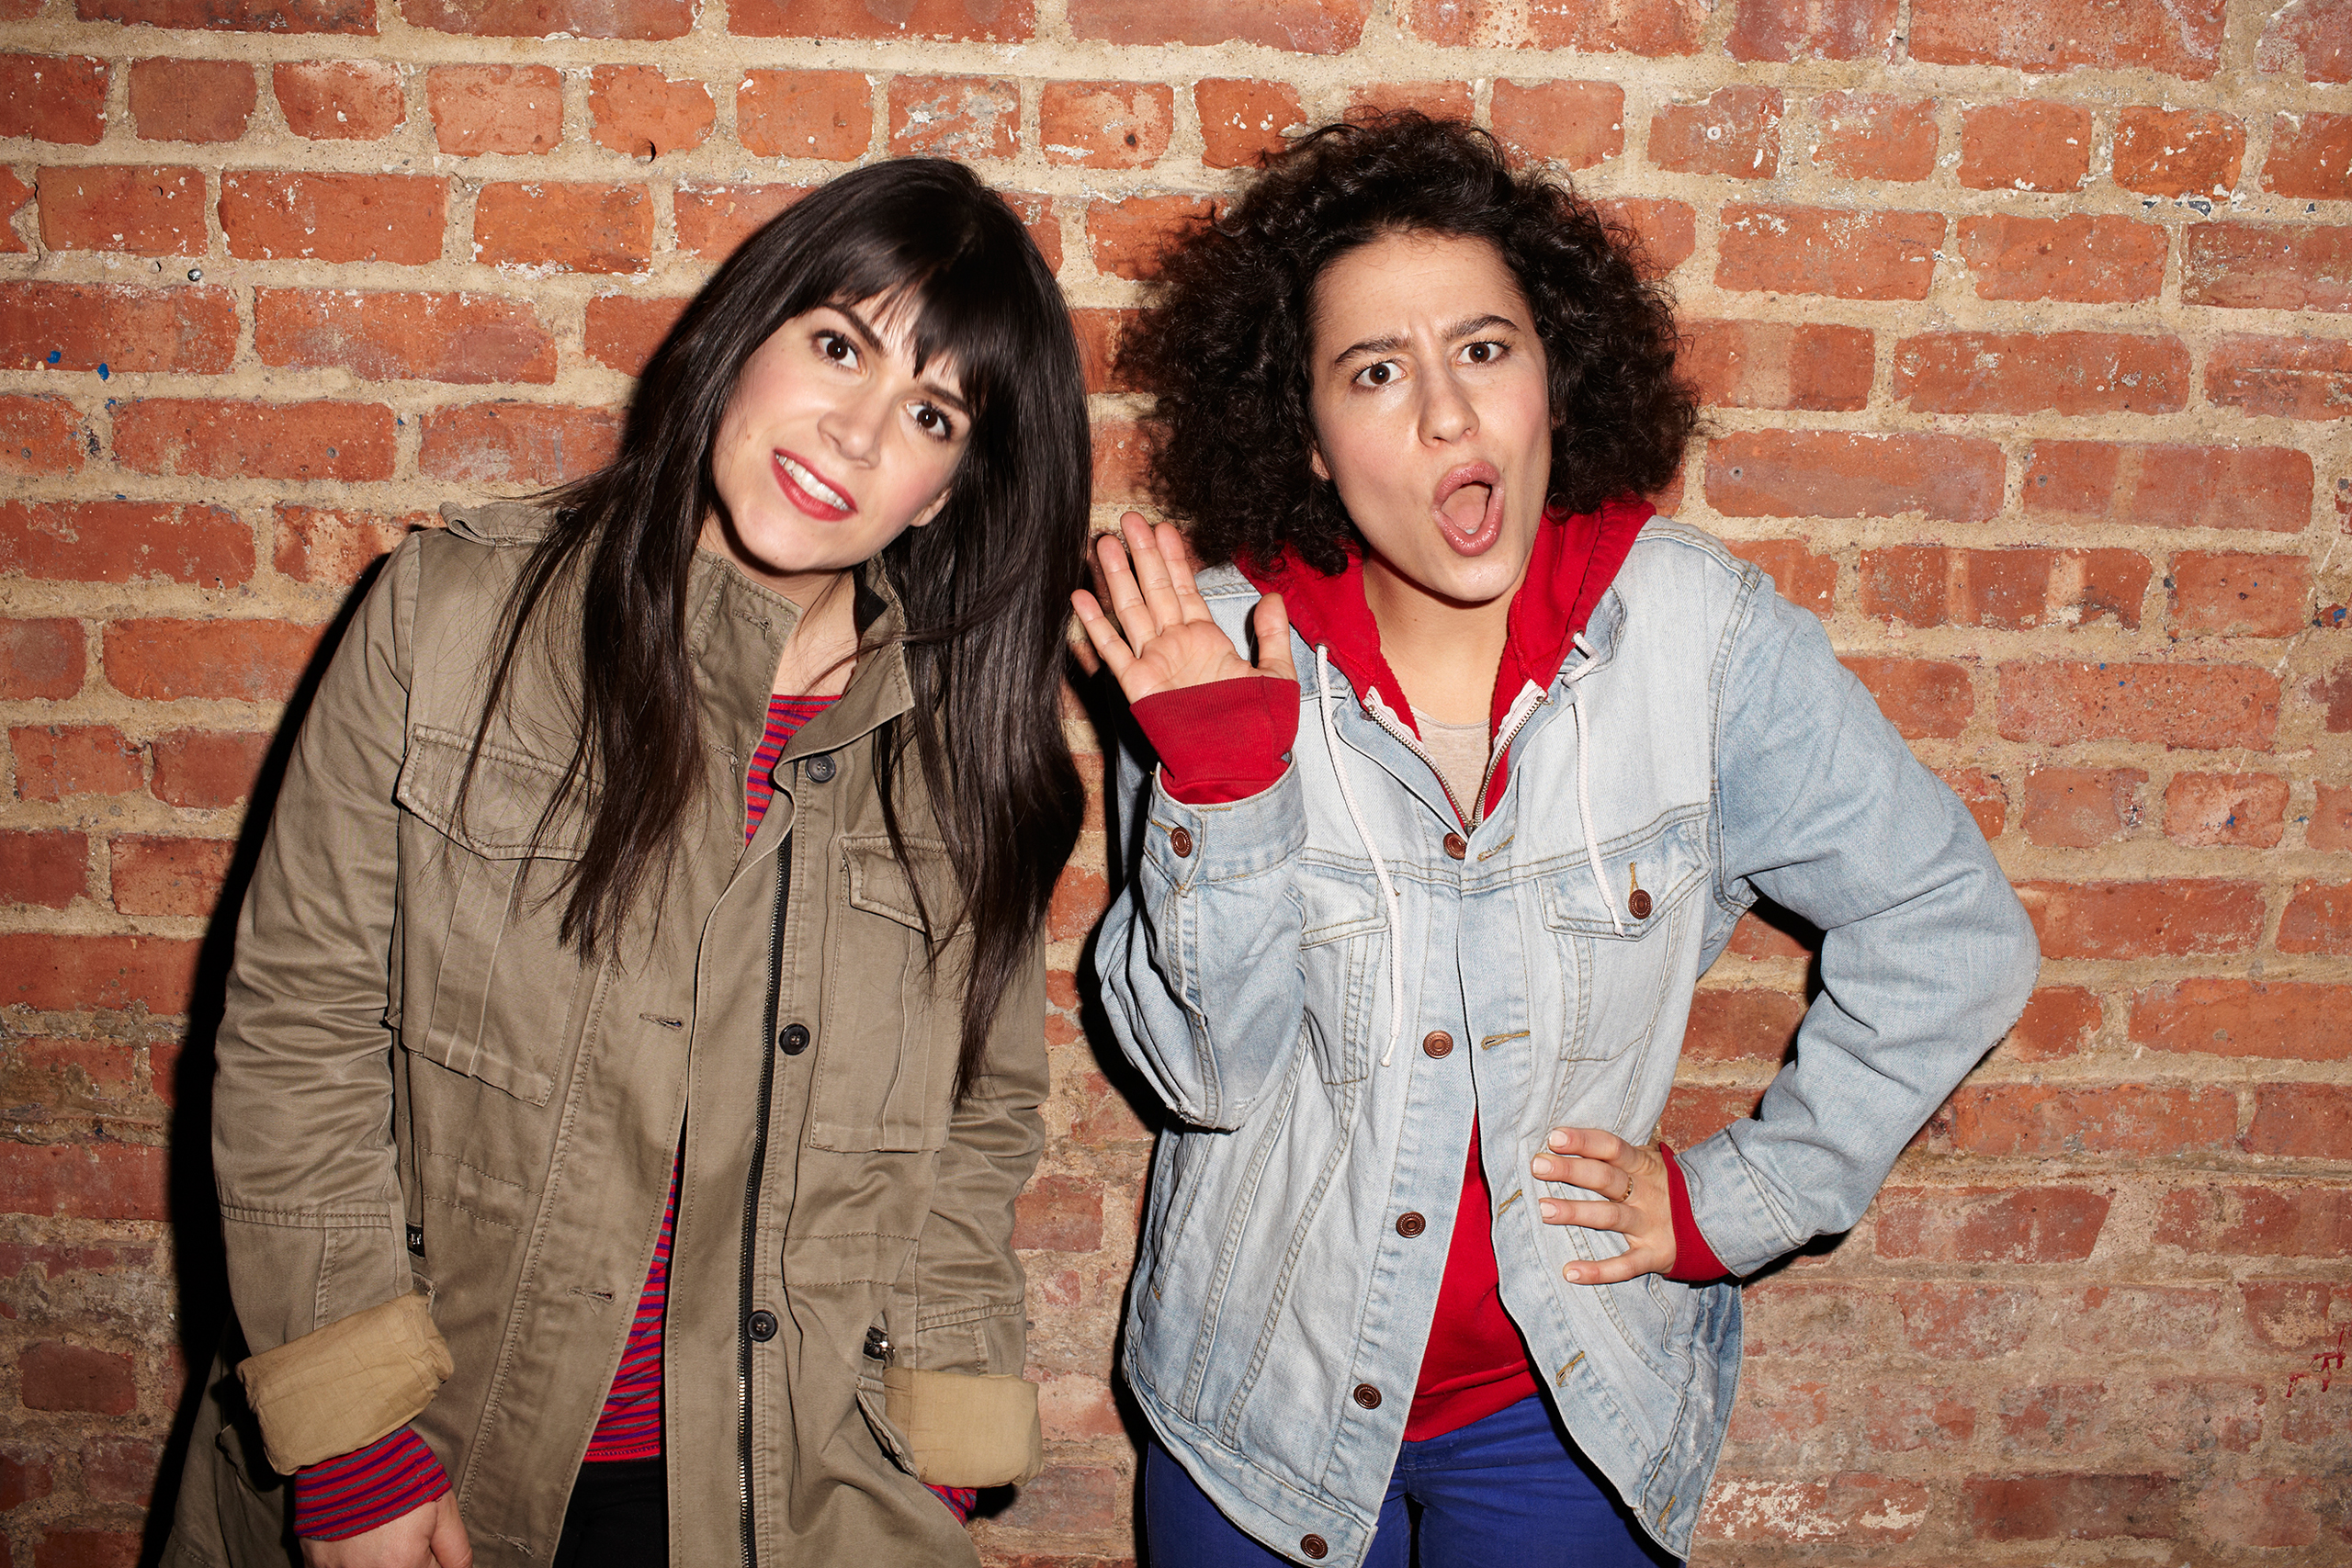 broad city wallpaper  Broad City HD Wallpaper | Background Image | 2560x1707 | ID:885682 ...